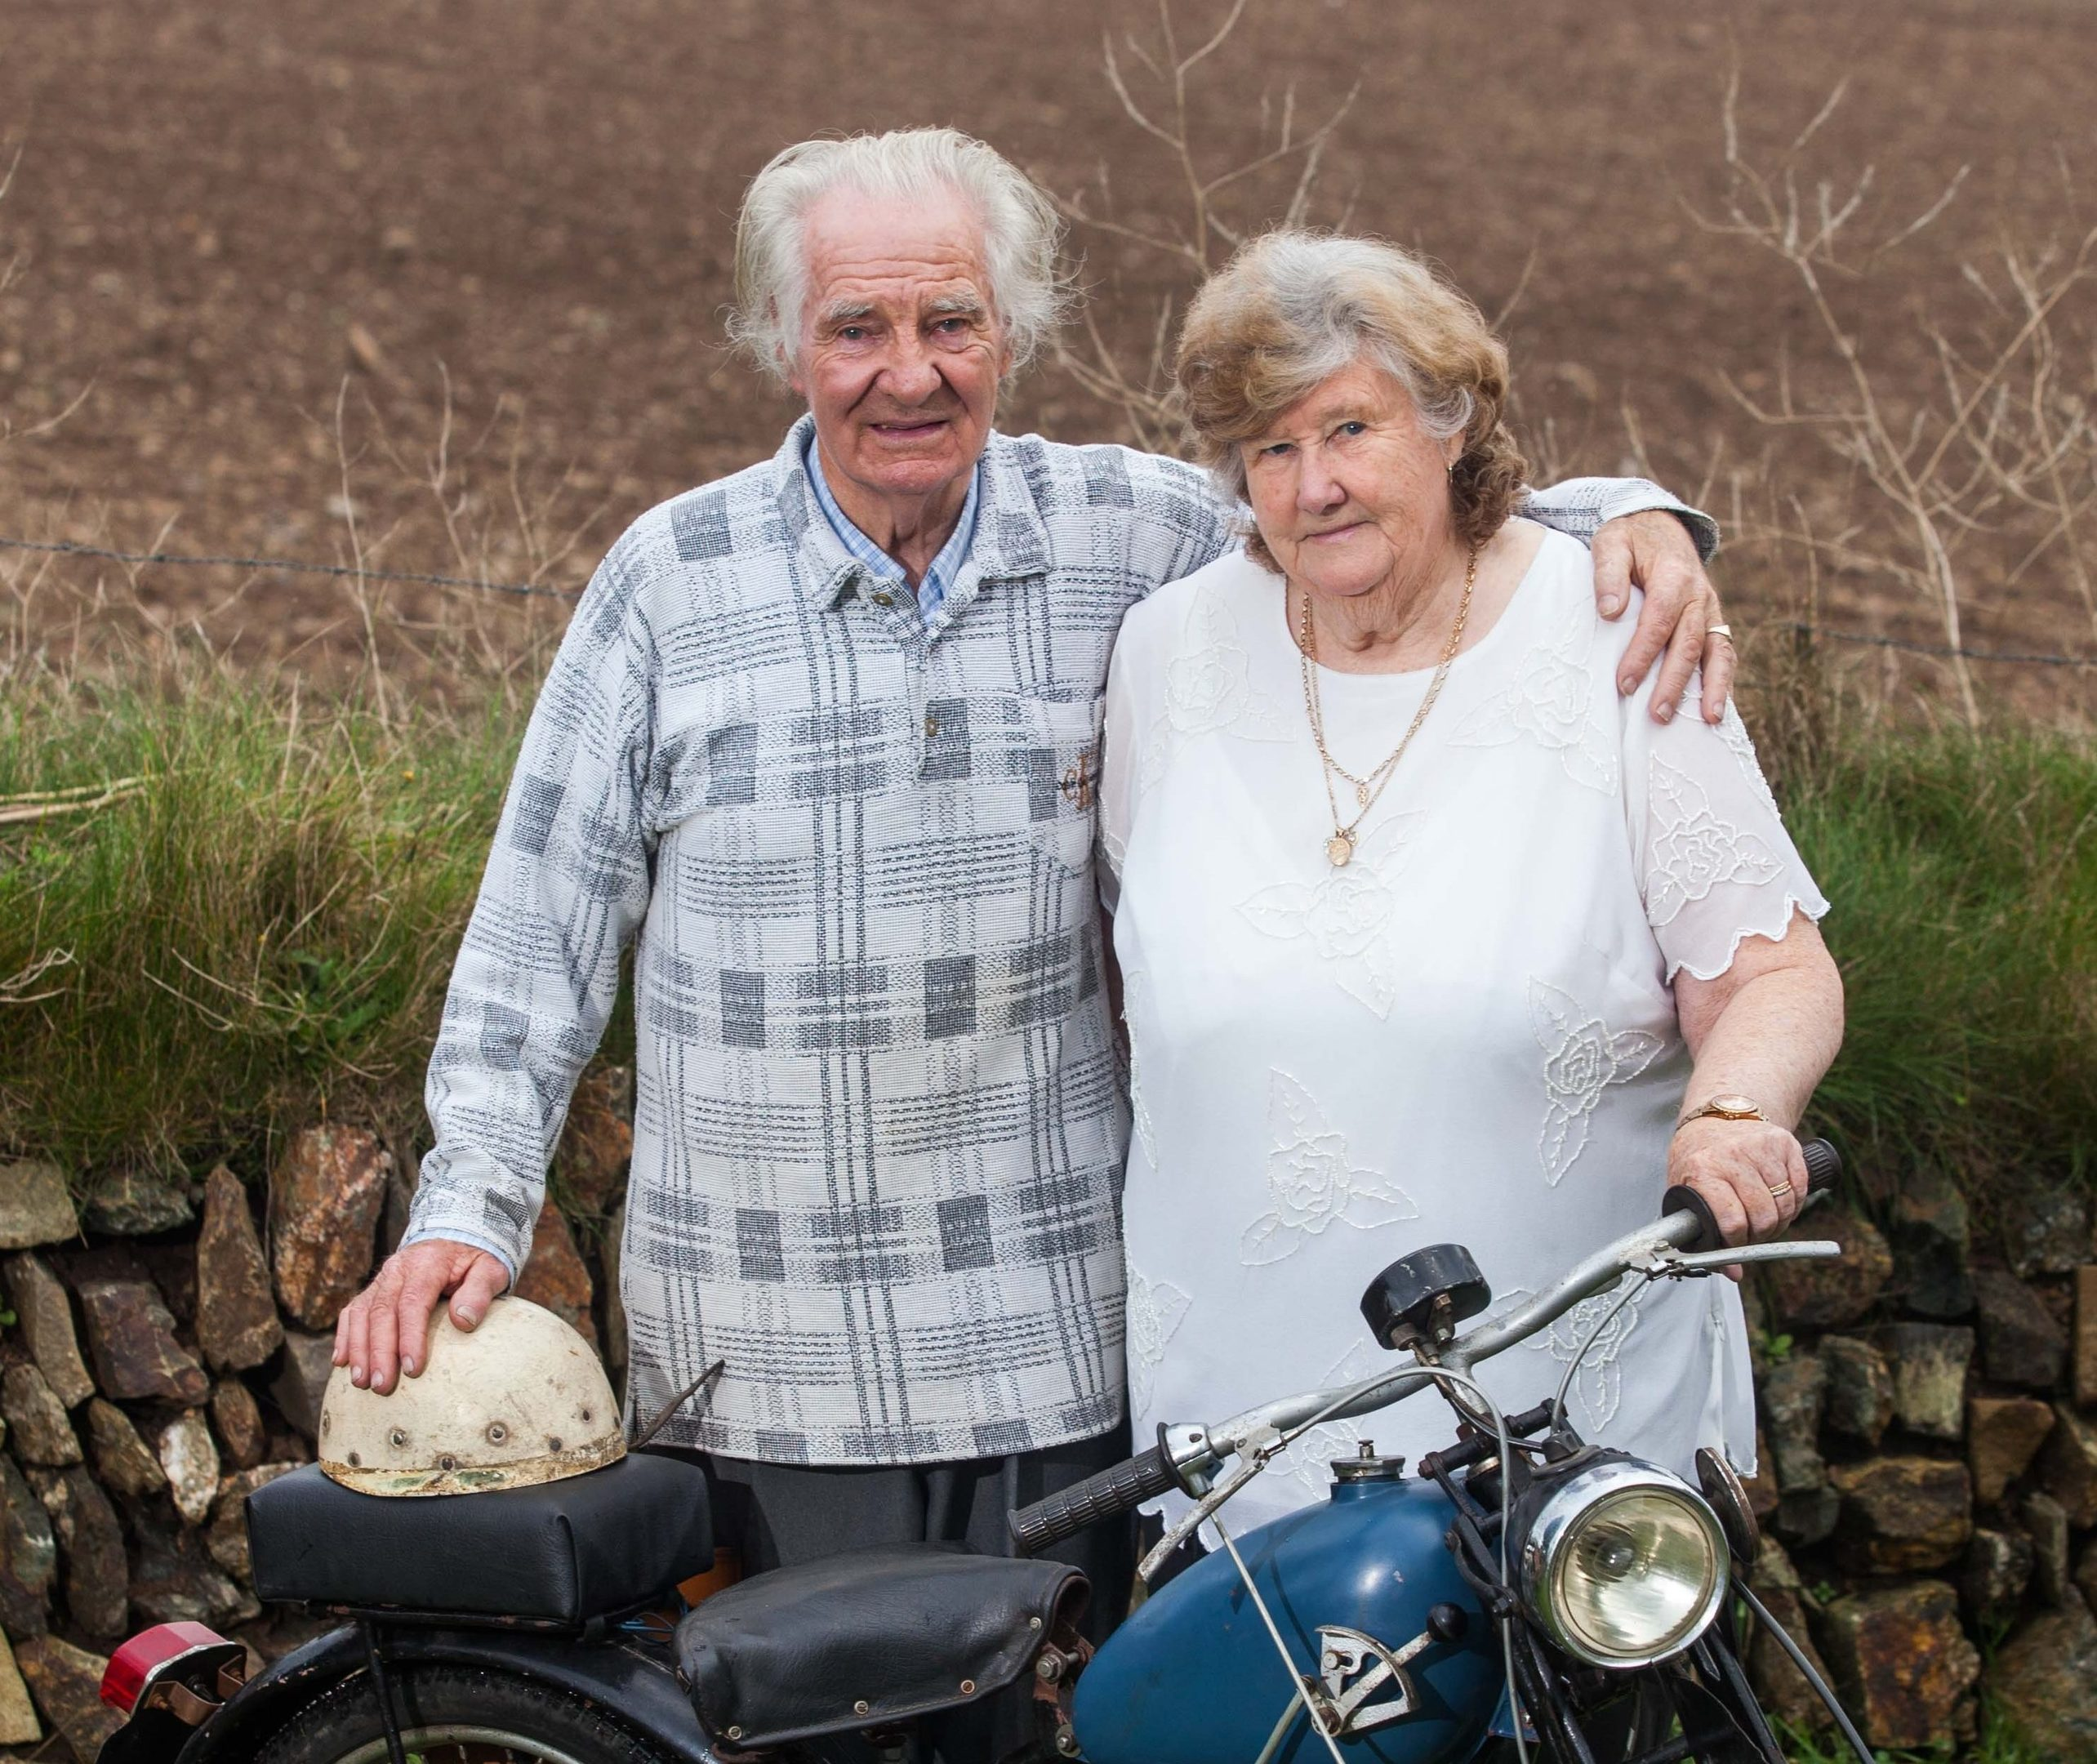 Jean and Bob Smith on their motorbike.